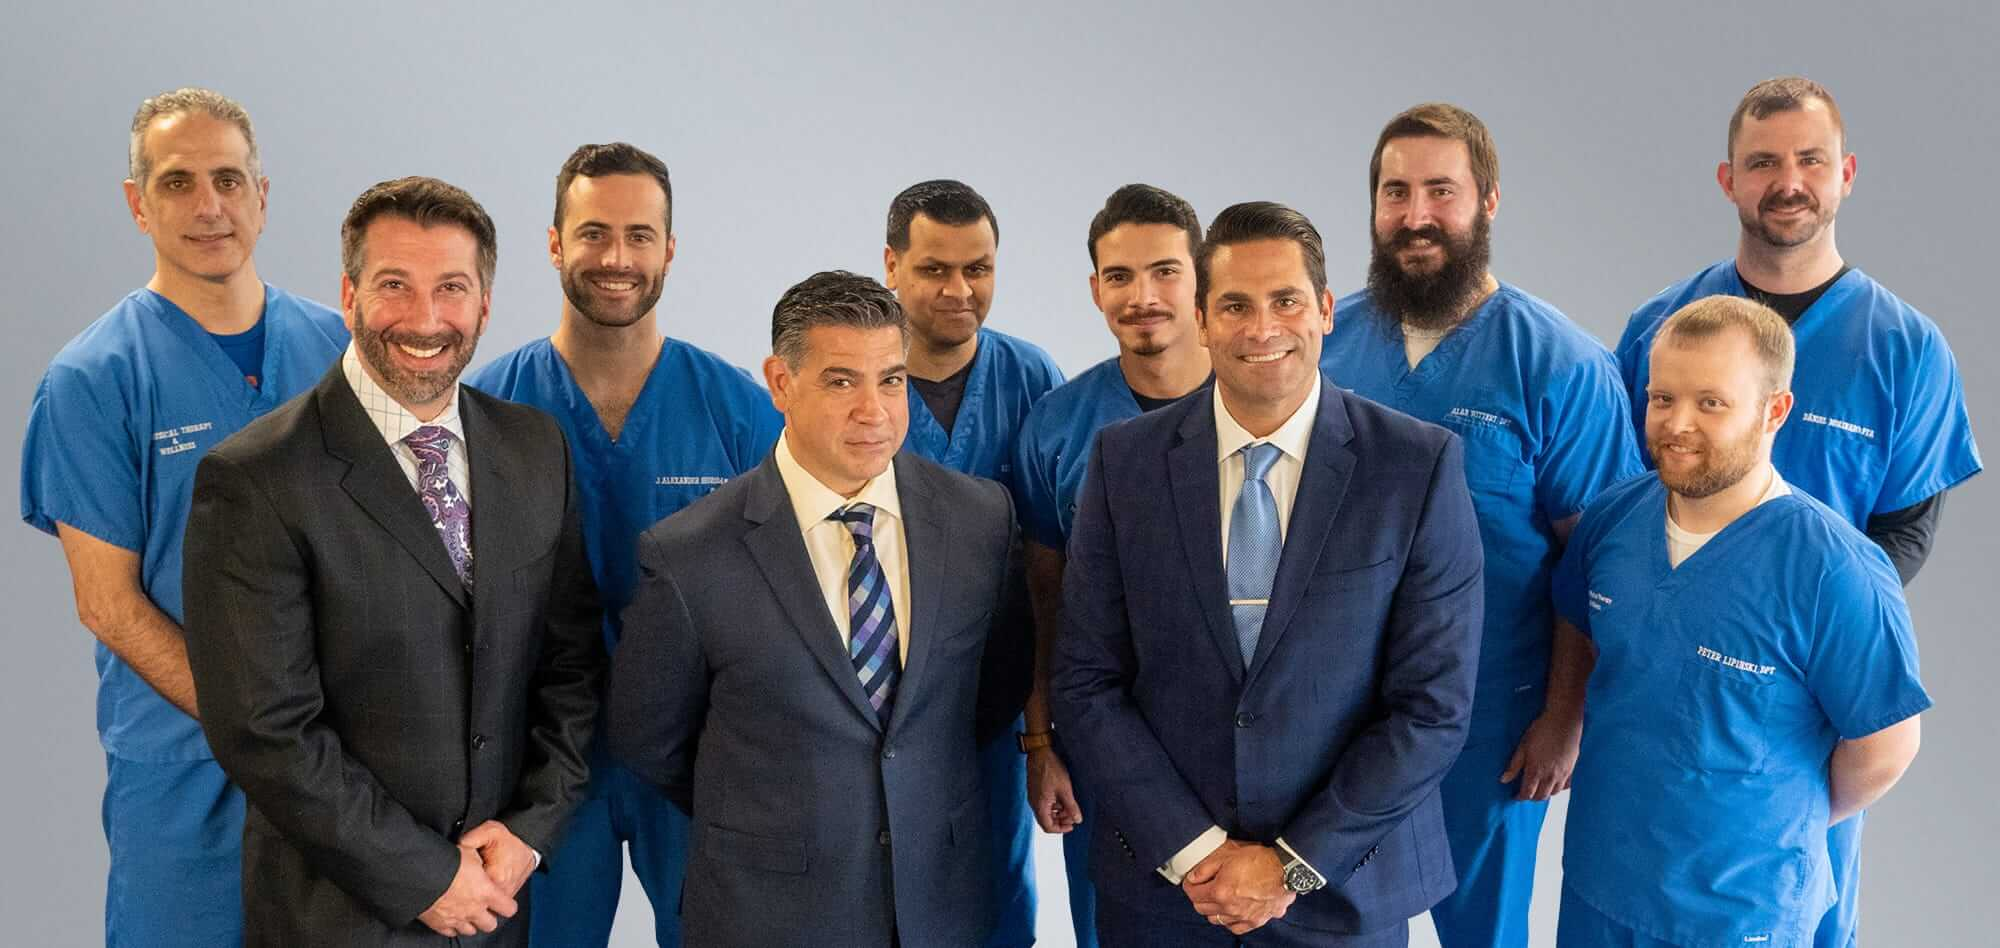 NY Physical Therapy & Wellness | Physical Therapists NYC | NY PT